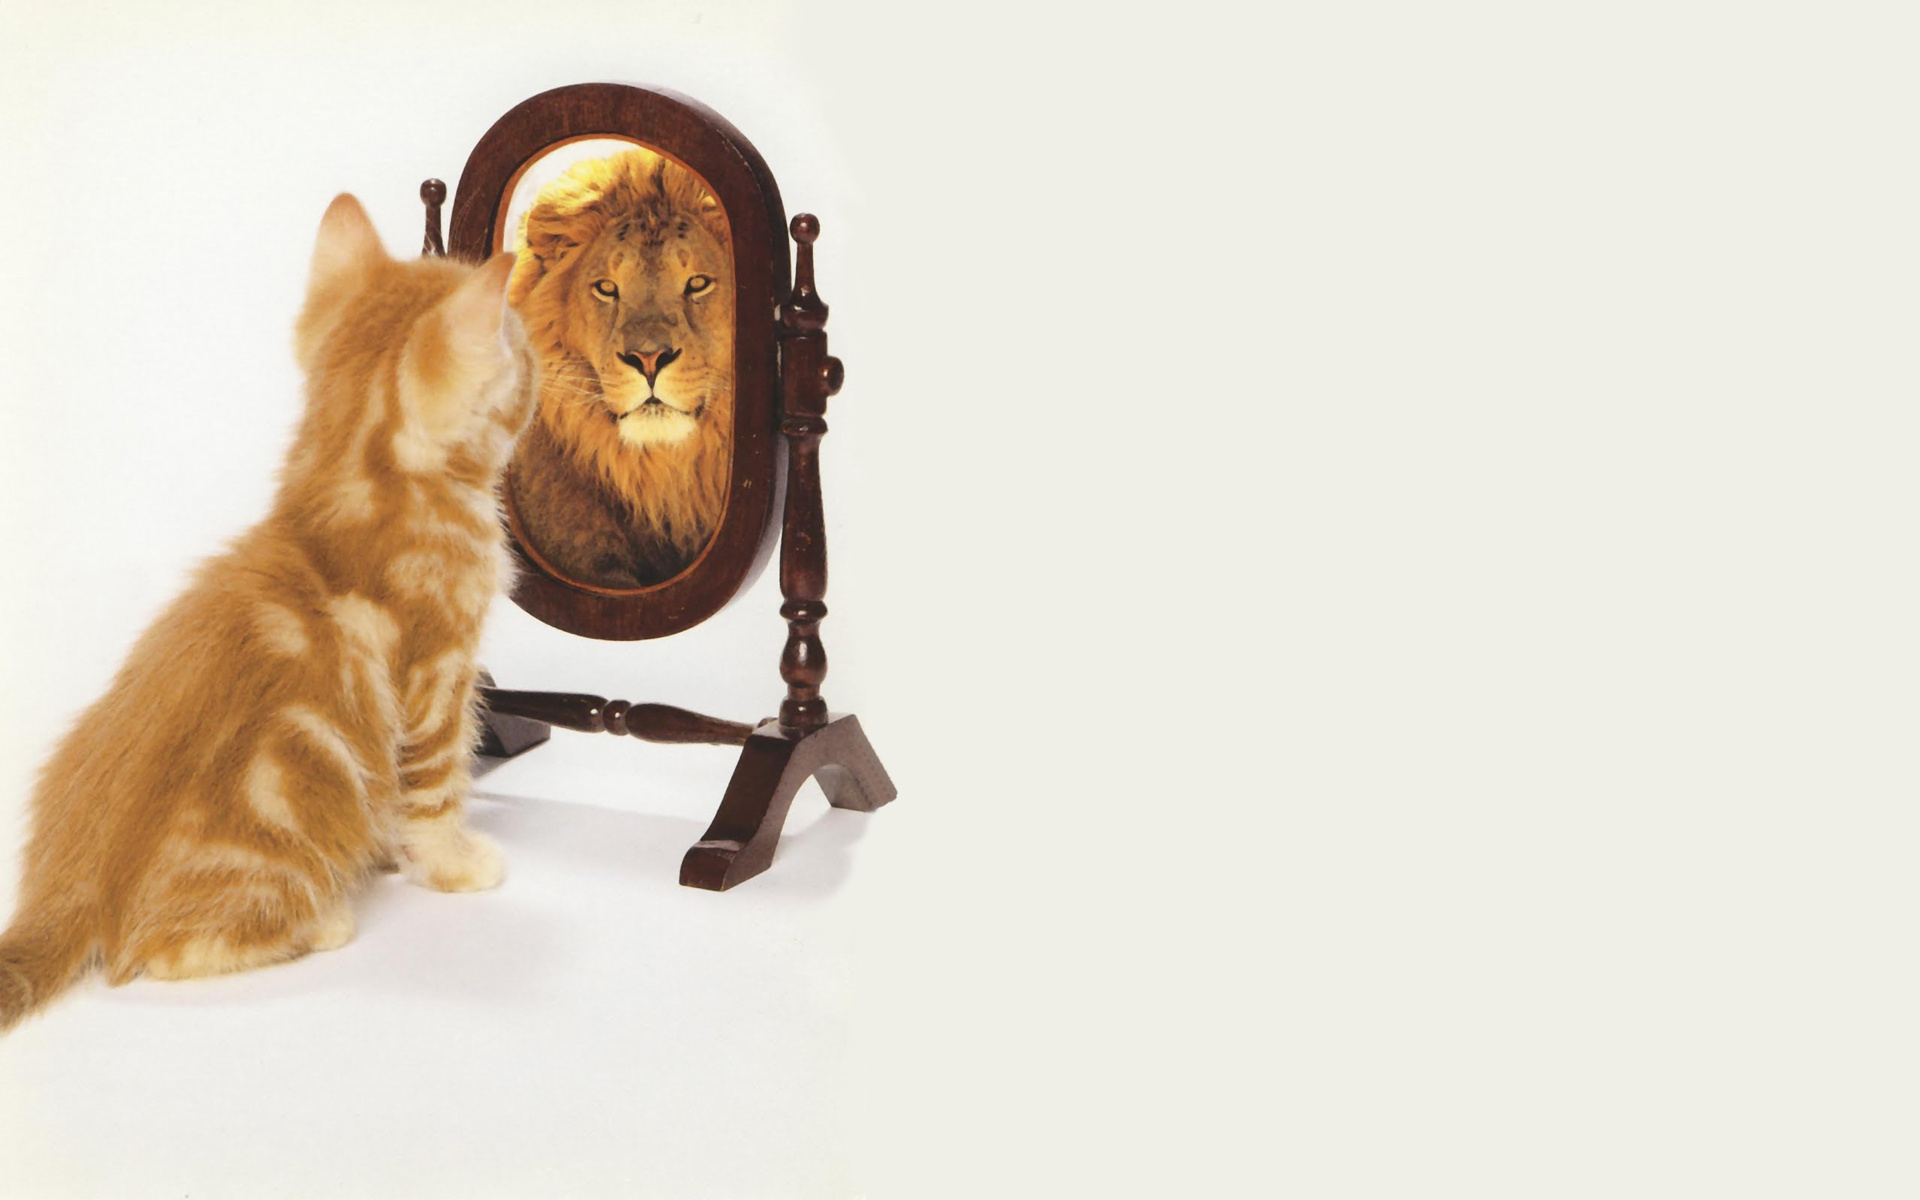 cat looking in mirror sees lion. ethics with a bite: fluffy kitten or lion? - the compliance strategists blog cat looking in mirror sees lion e